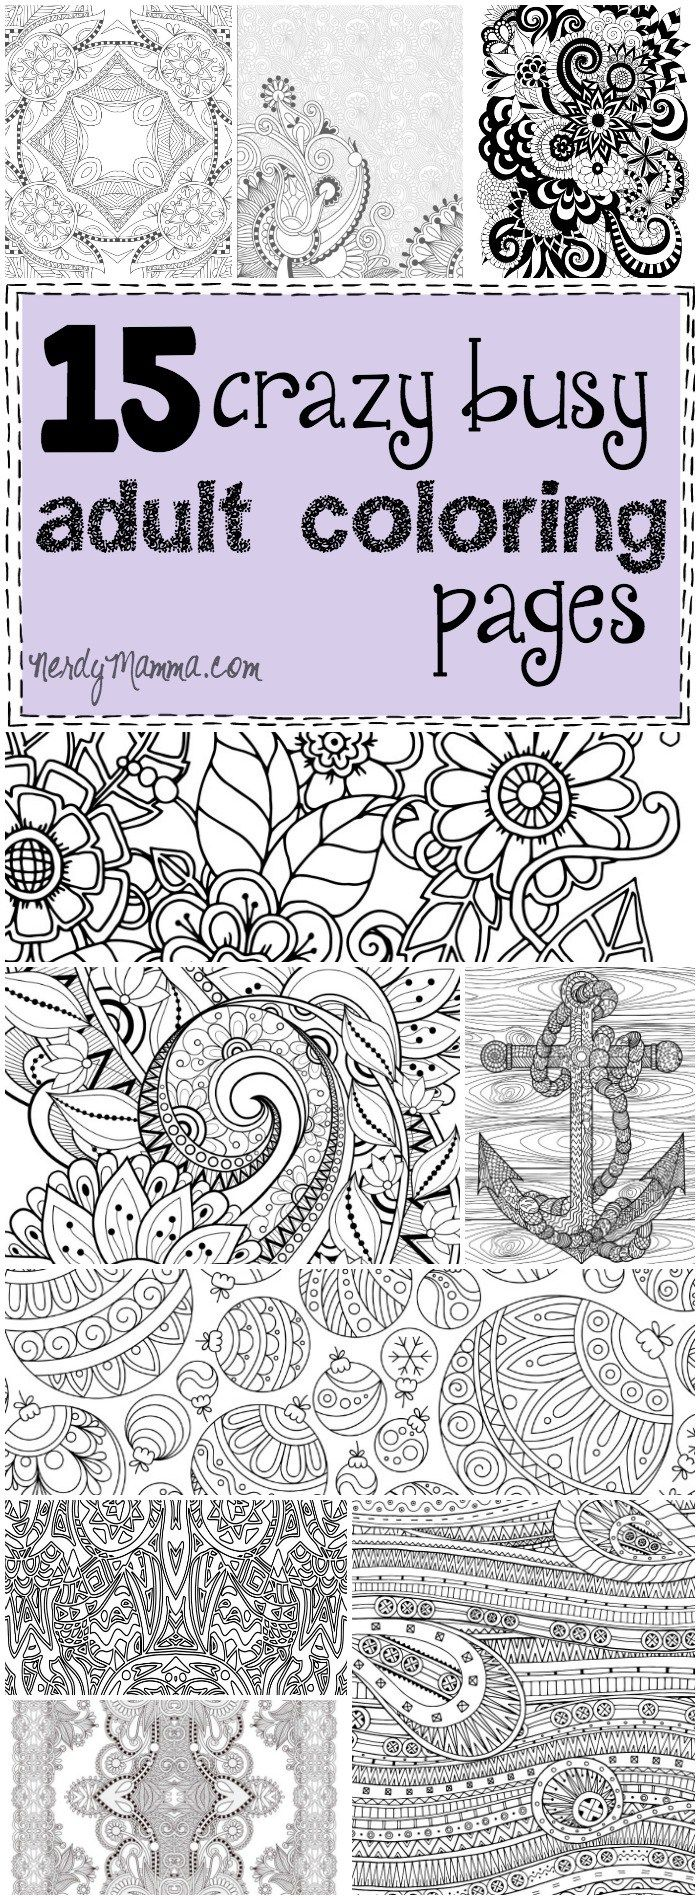 Free printable santa wish list coloring page tickled peach studio - 15 Crazy Busy Coloring Pages For Adults